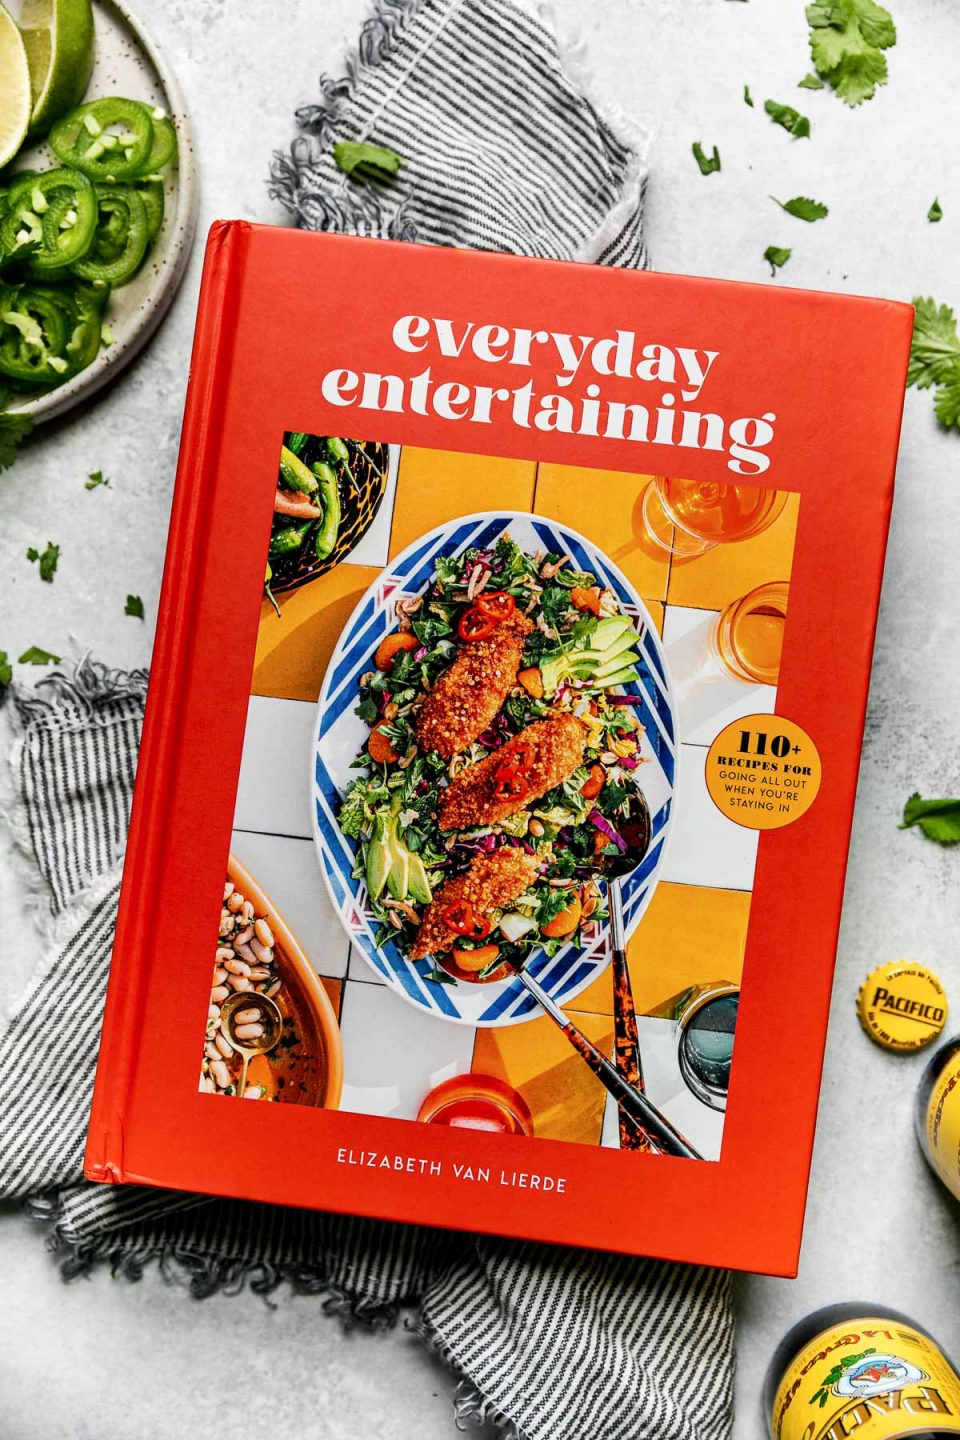 Everyday Entertaining, a cookbook by Elizabeth Van Lierde, atop a striped gray linen napkin on a light blue surface, surrounded by cilantro leaves, Pacifico beer, lime wedges, & a small plate of enchiladas garnishes (lime wedges, cilantro, sliced jalapeno, etc.)